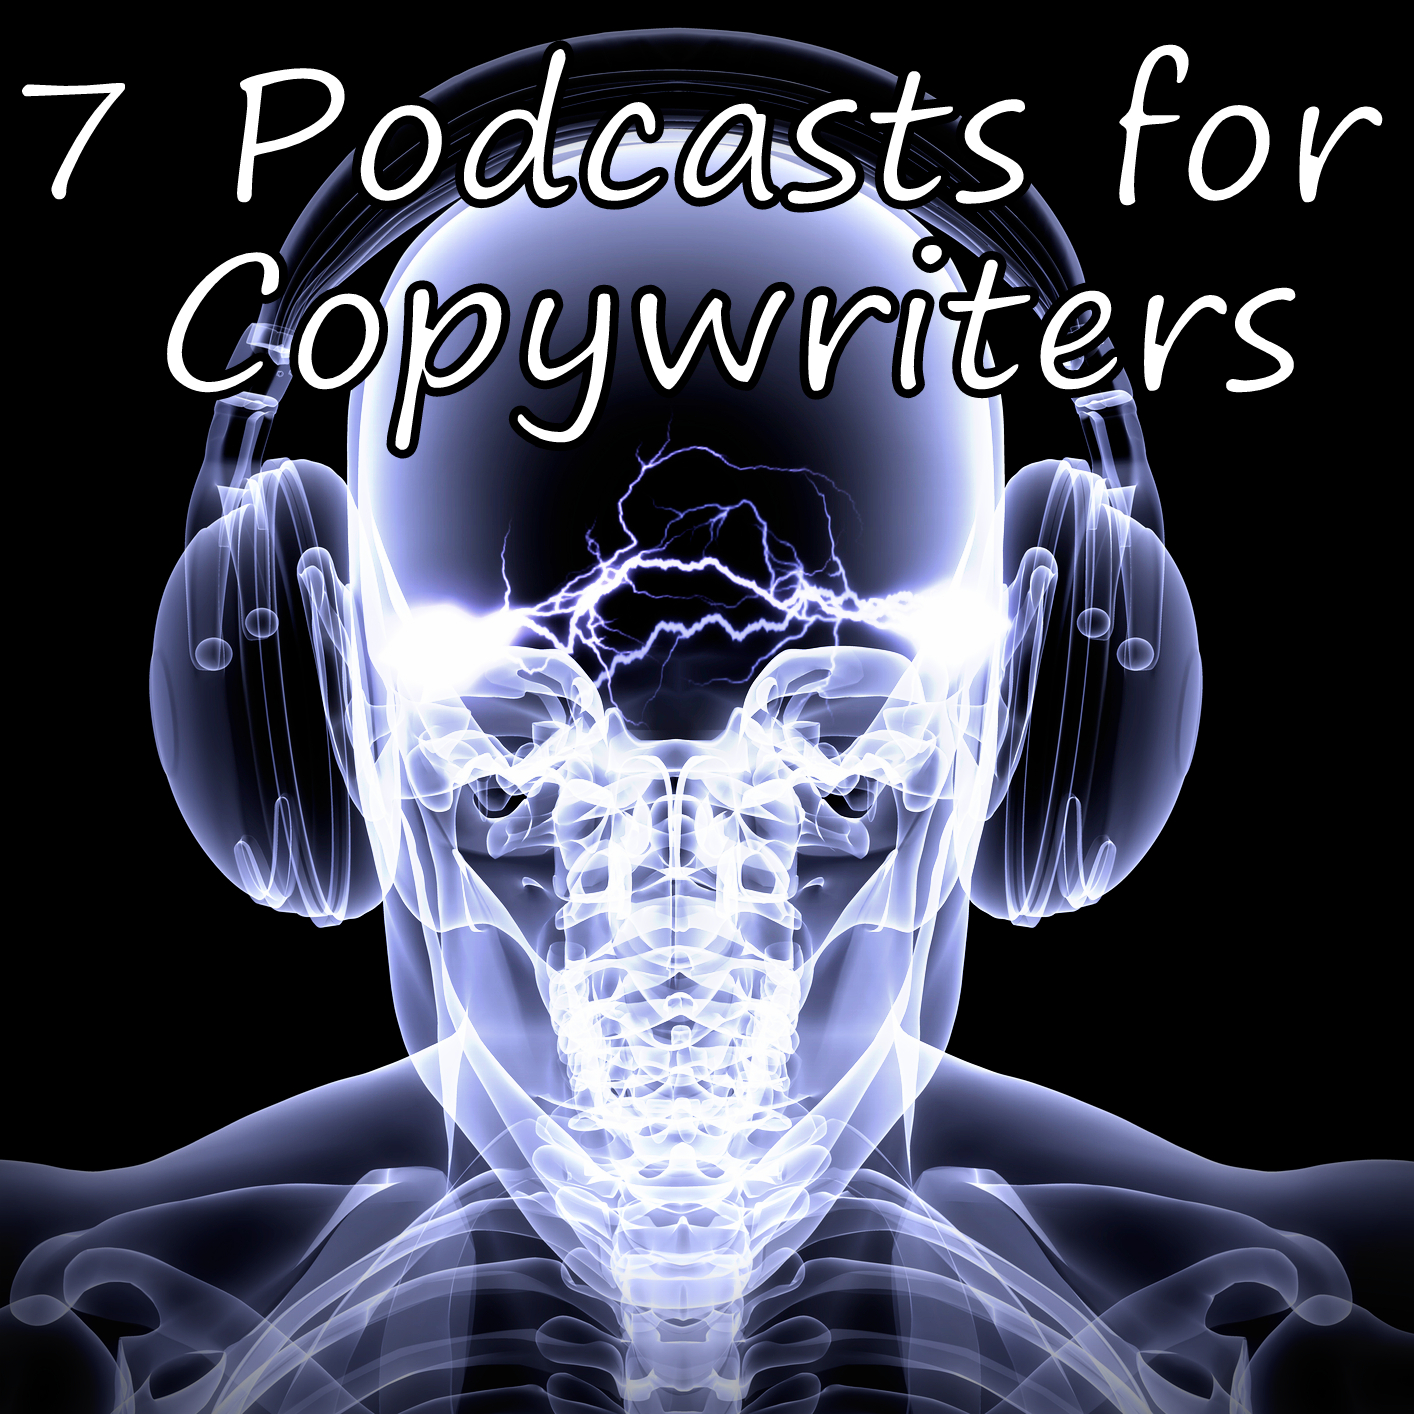 6 Ways To Turn Your House Into A Productive Home Environment: The Copywriter's Crucible7 Podcasts To Enrich Your